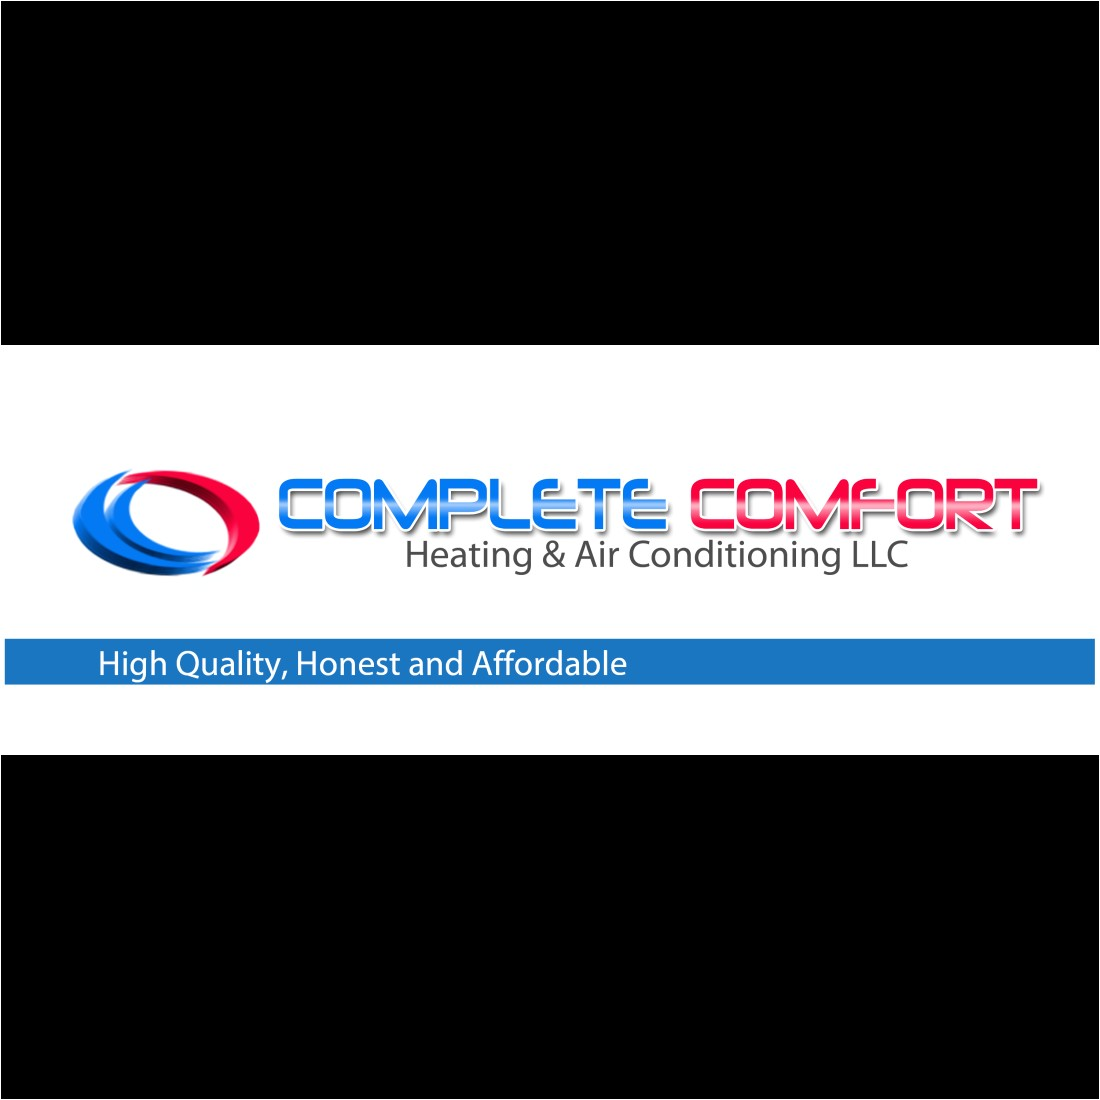 Complete Comfort Heating and Air Crossnore Nc Complete Comfort Heating and Air Conditioning In Fishers